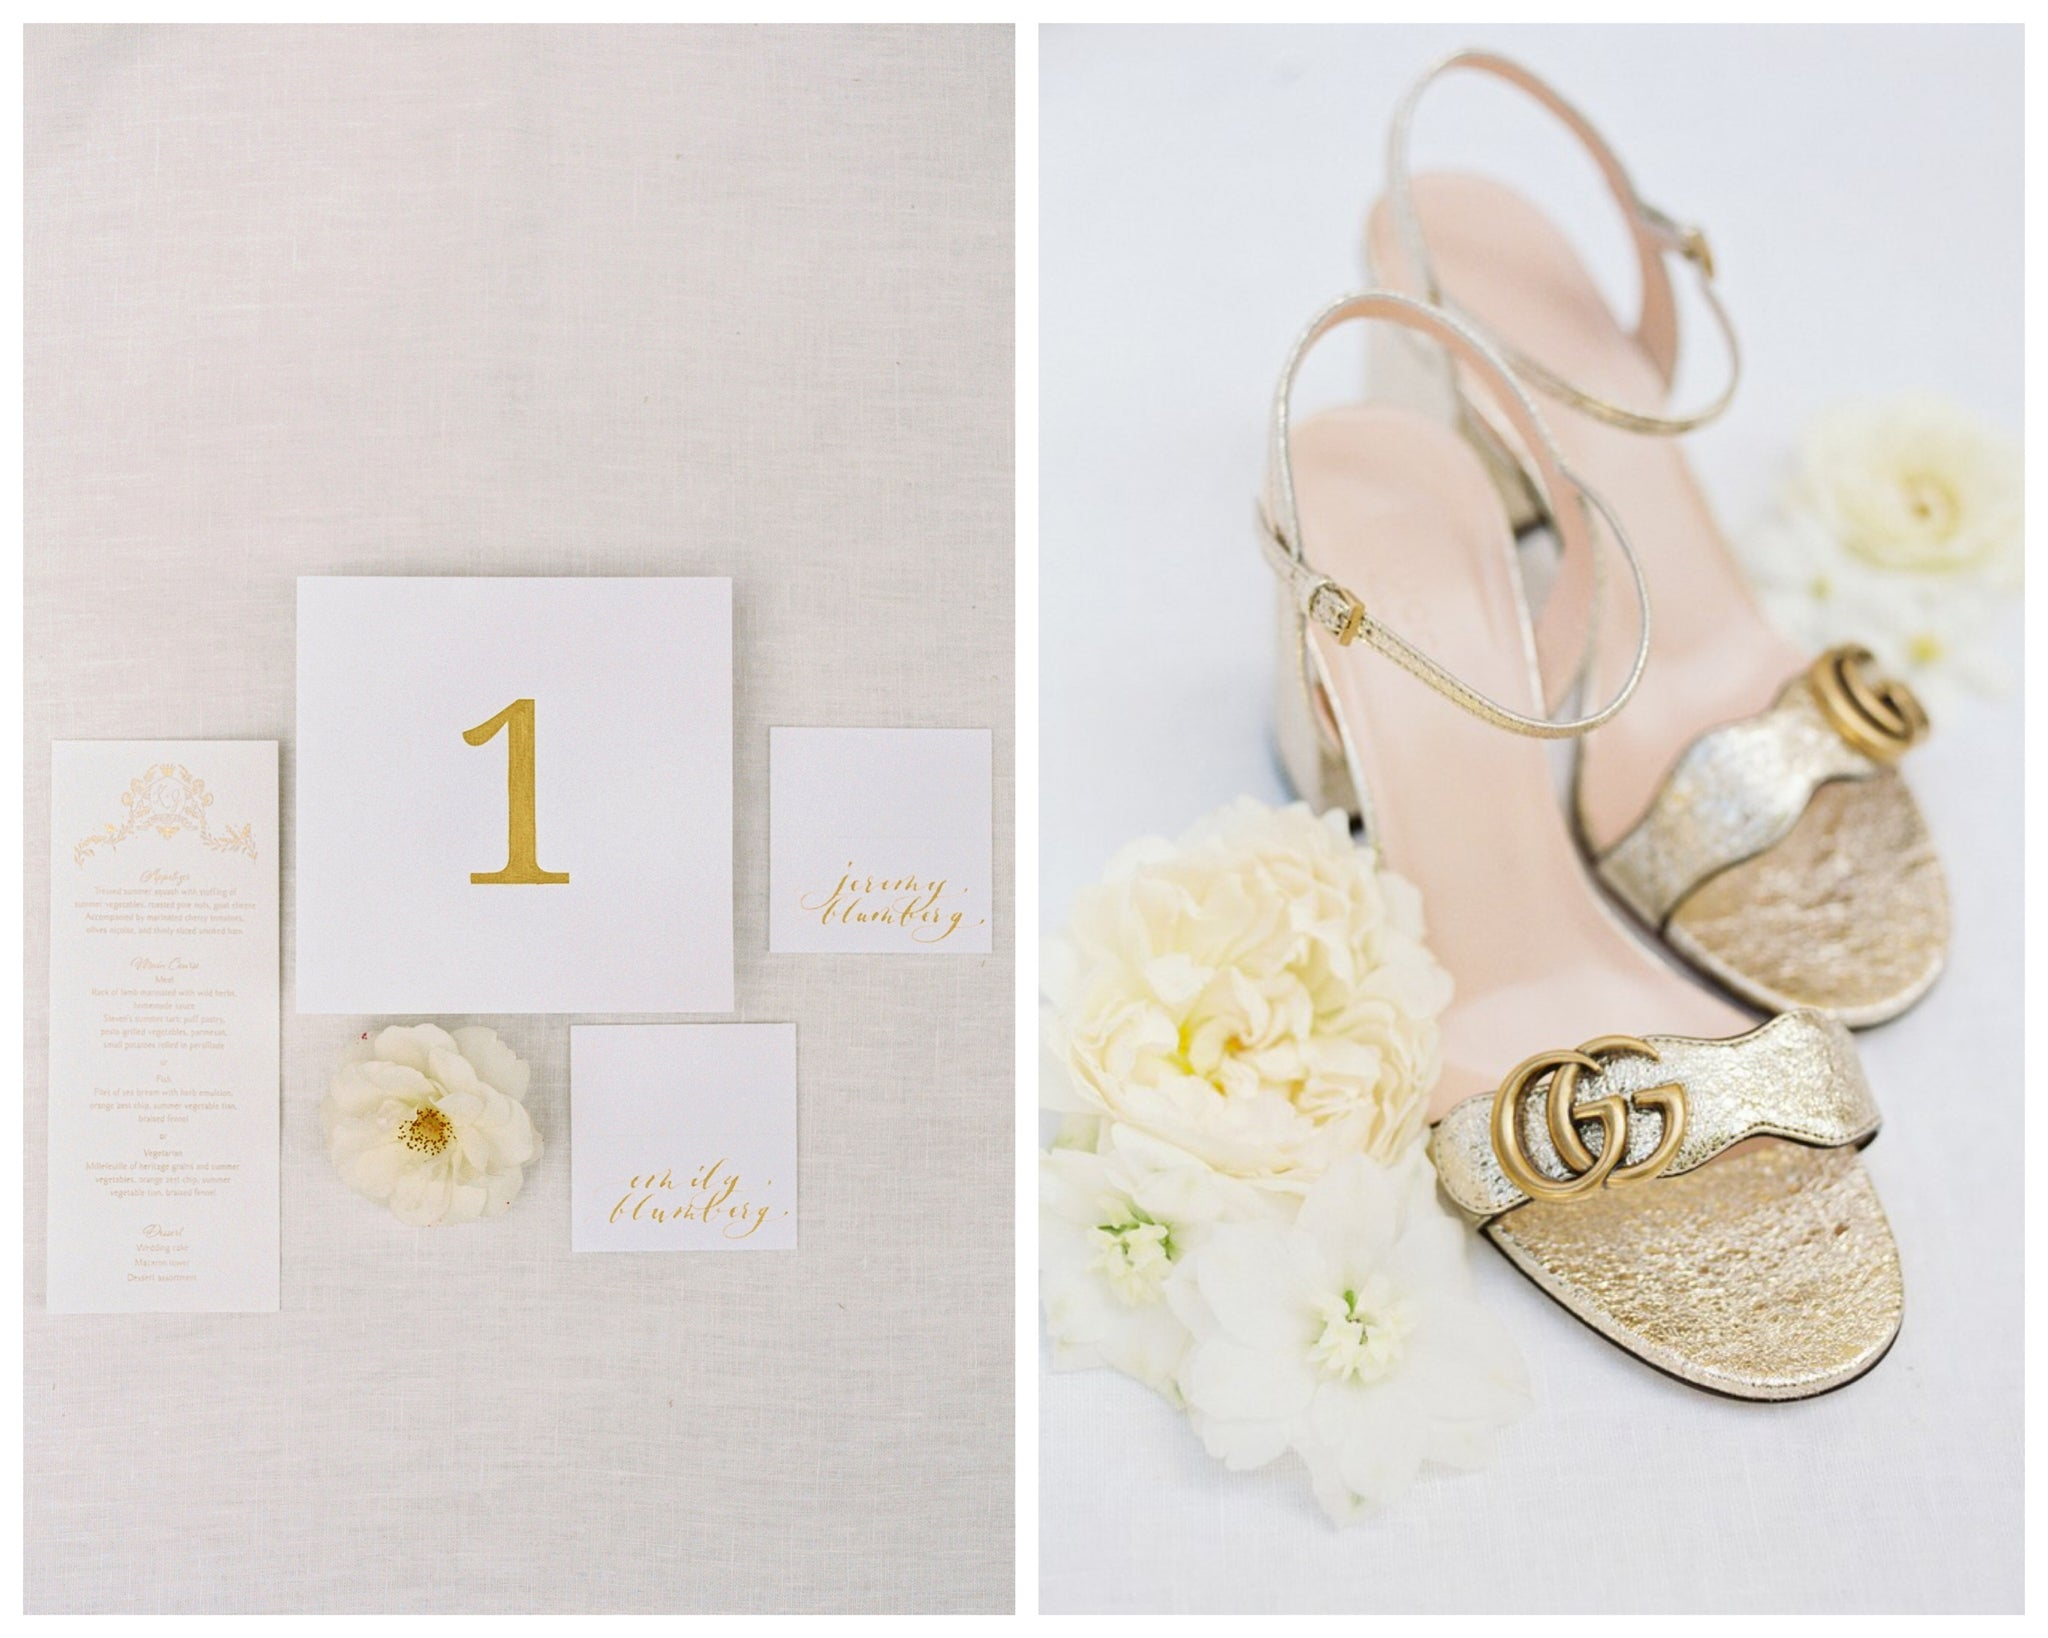 Katie Dean Jewelry romantic destination wedding at a chateau, Provence, France, paper goods + shoes, details